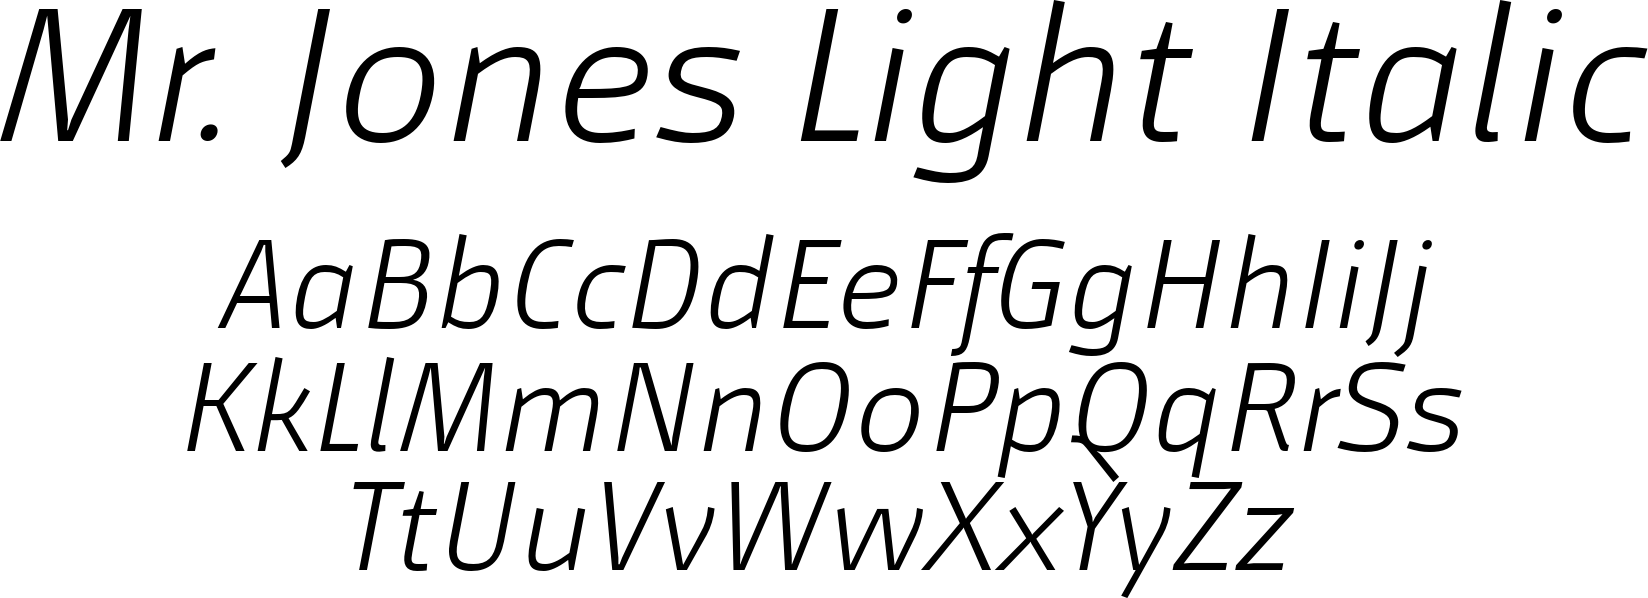 Mr. Jones Light Italic